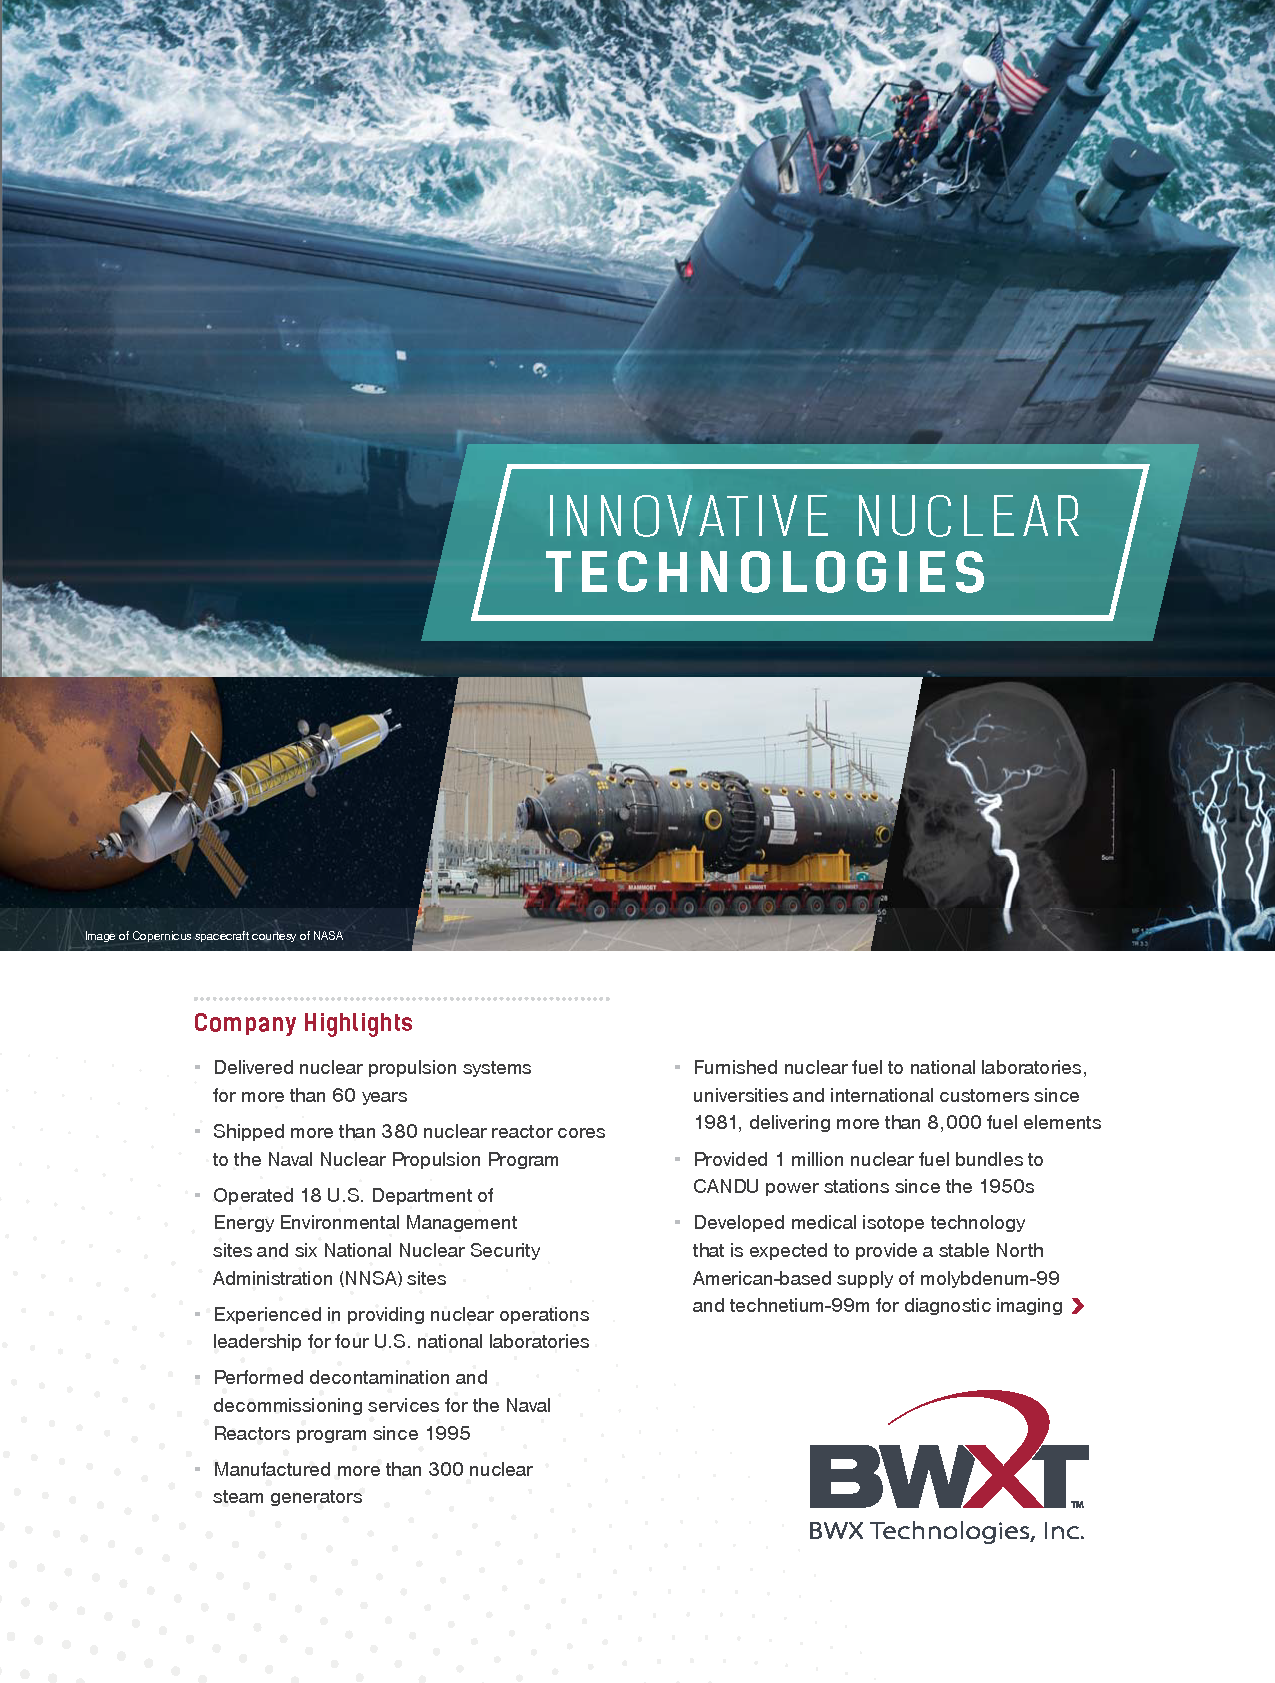 BWX Technologies, Inc. Overview